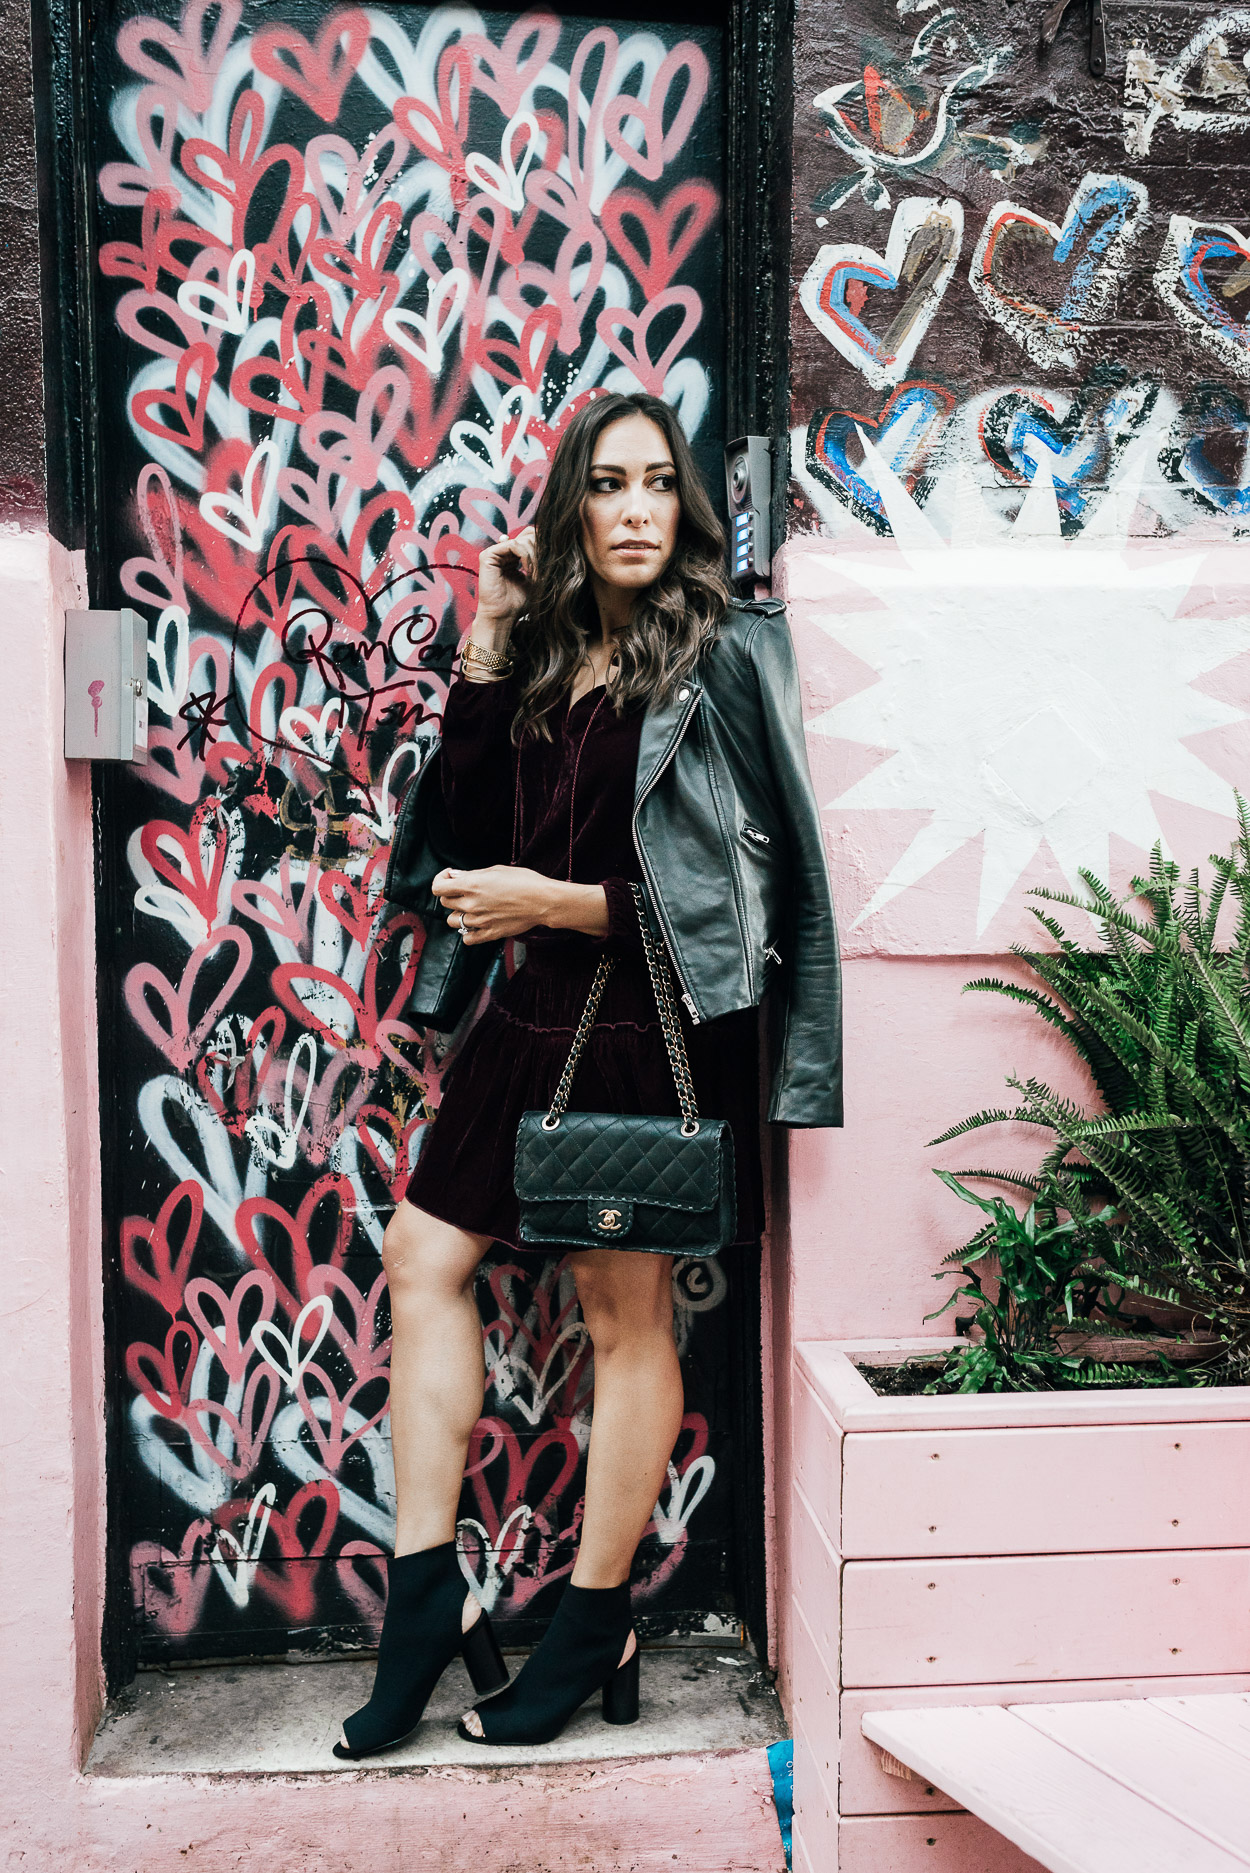 eeb31379e8d Ella Moss dress at Pietro Nolita worn by A Glam Lifestyle blogger during  NYFW for the